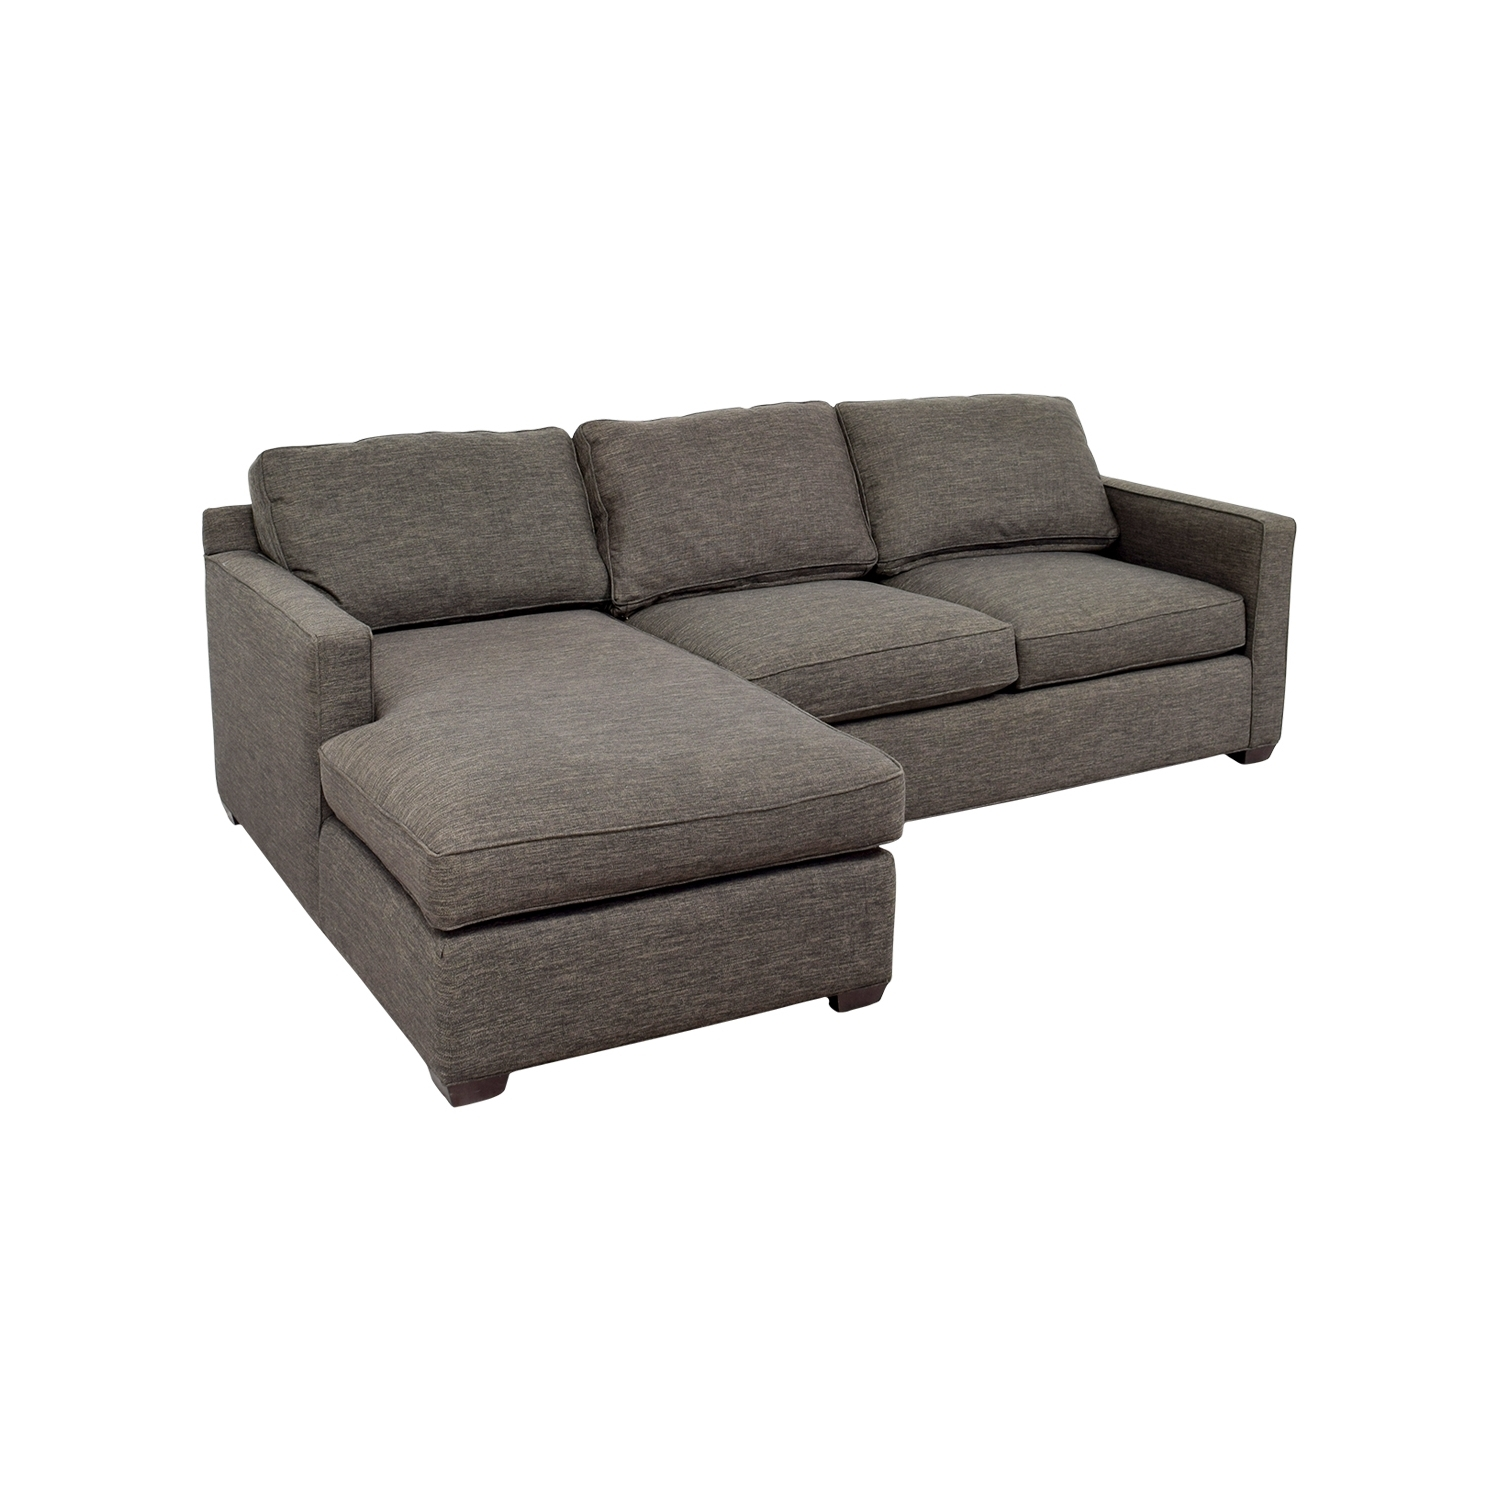 [%63% Off – Crate And Barrel Crate & Barrel Davis Grey Chaise With Regard To Popular Grey Chaise Sectionals|Grey Chaise Sectionals With Regard To Favorite 63% Off – Crate And Barrel Crate & Barrel Davis Grey Chaise|2017 Grey Chaise Sectionals Inside 63% Off – Crate And Barrel Crate & Barrel Davis Grey Chaise|Latest 63% Off – Crate And Barrel Crate & Barrel Davis Grey Chaise Intended For Grey Chaise Sectionals%] (View 9 of 15)